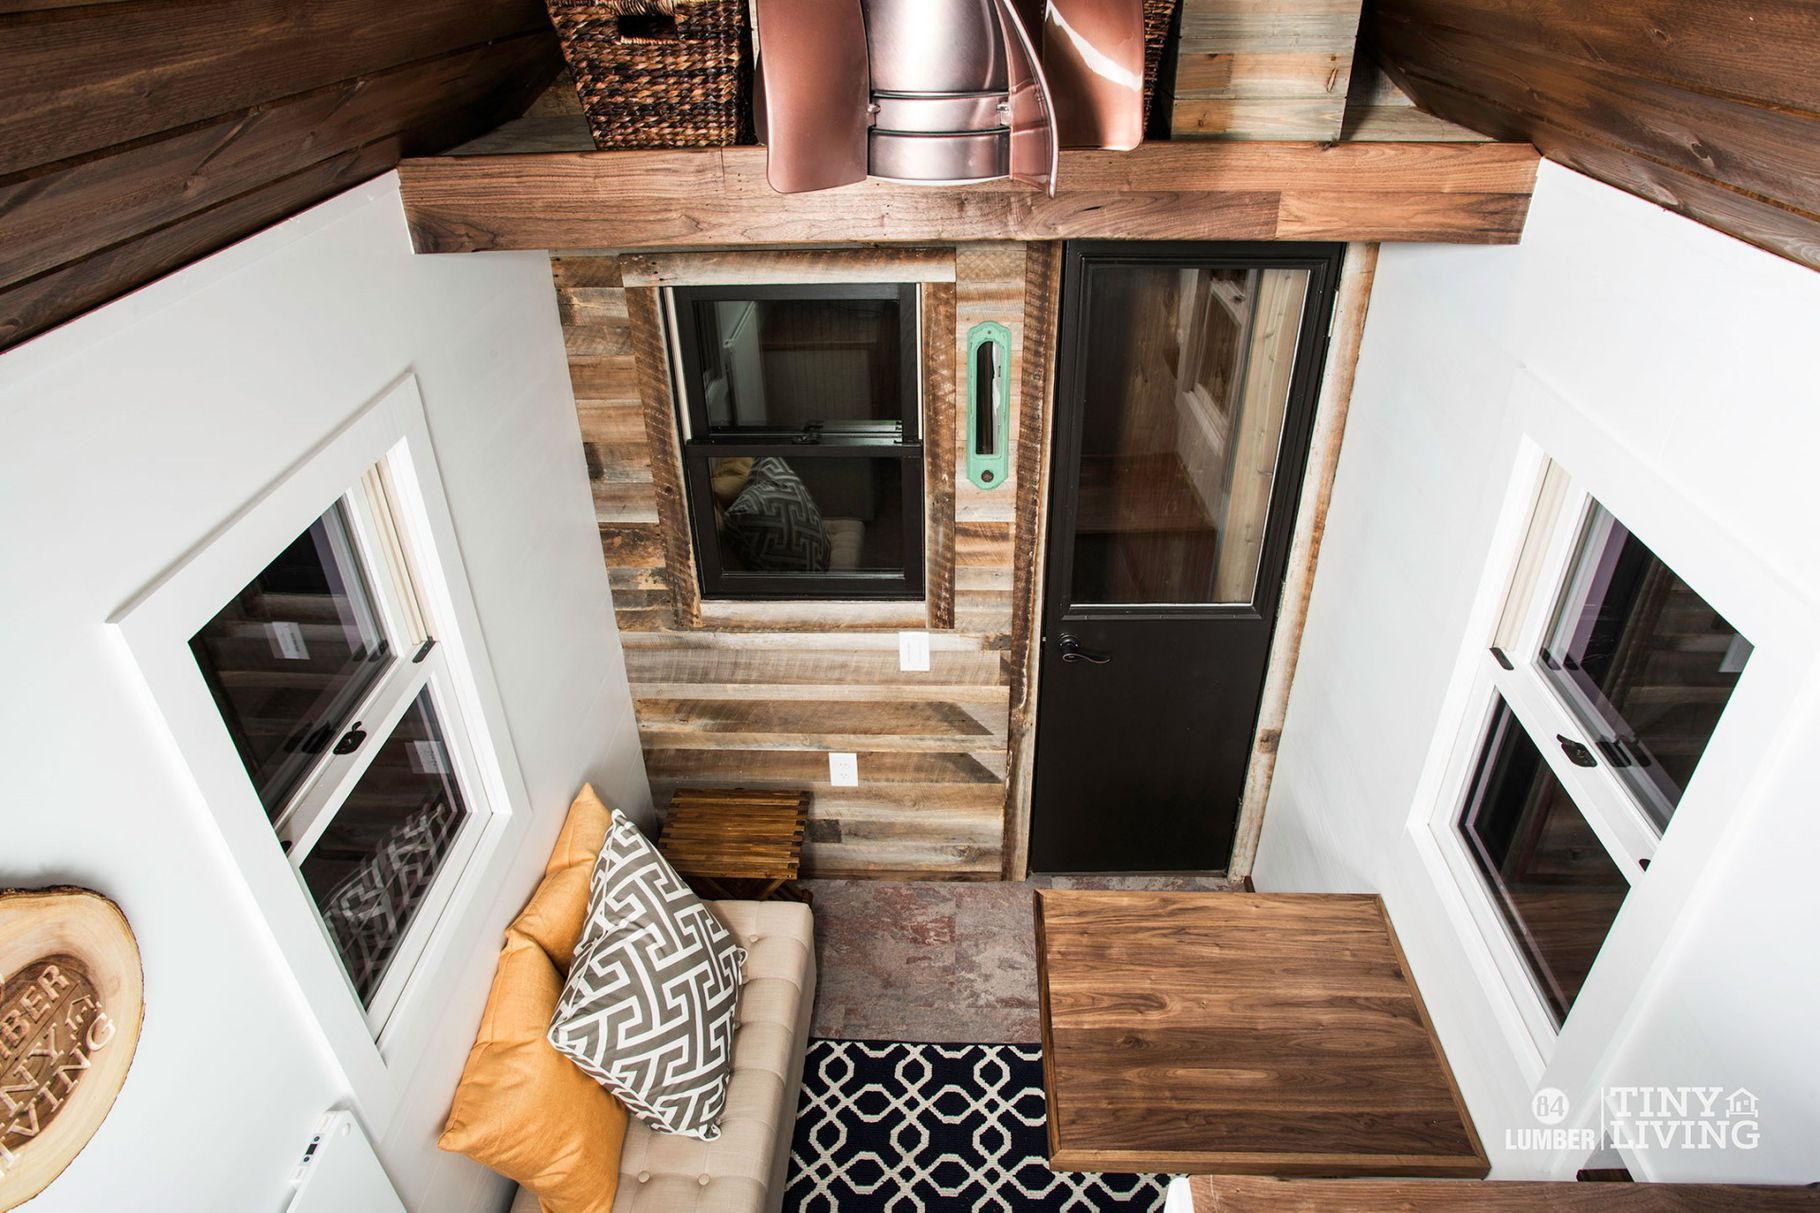 Tiny Houses for the Masses 84 Lumber Launches Packages Starting at $7K